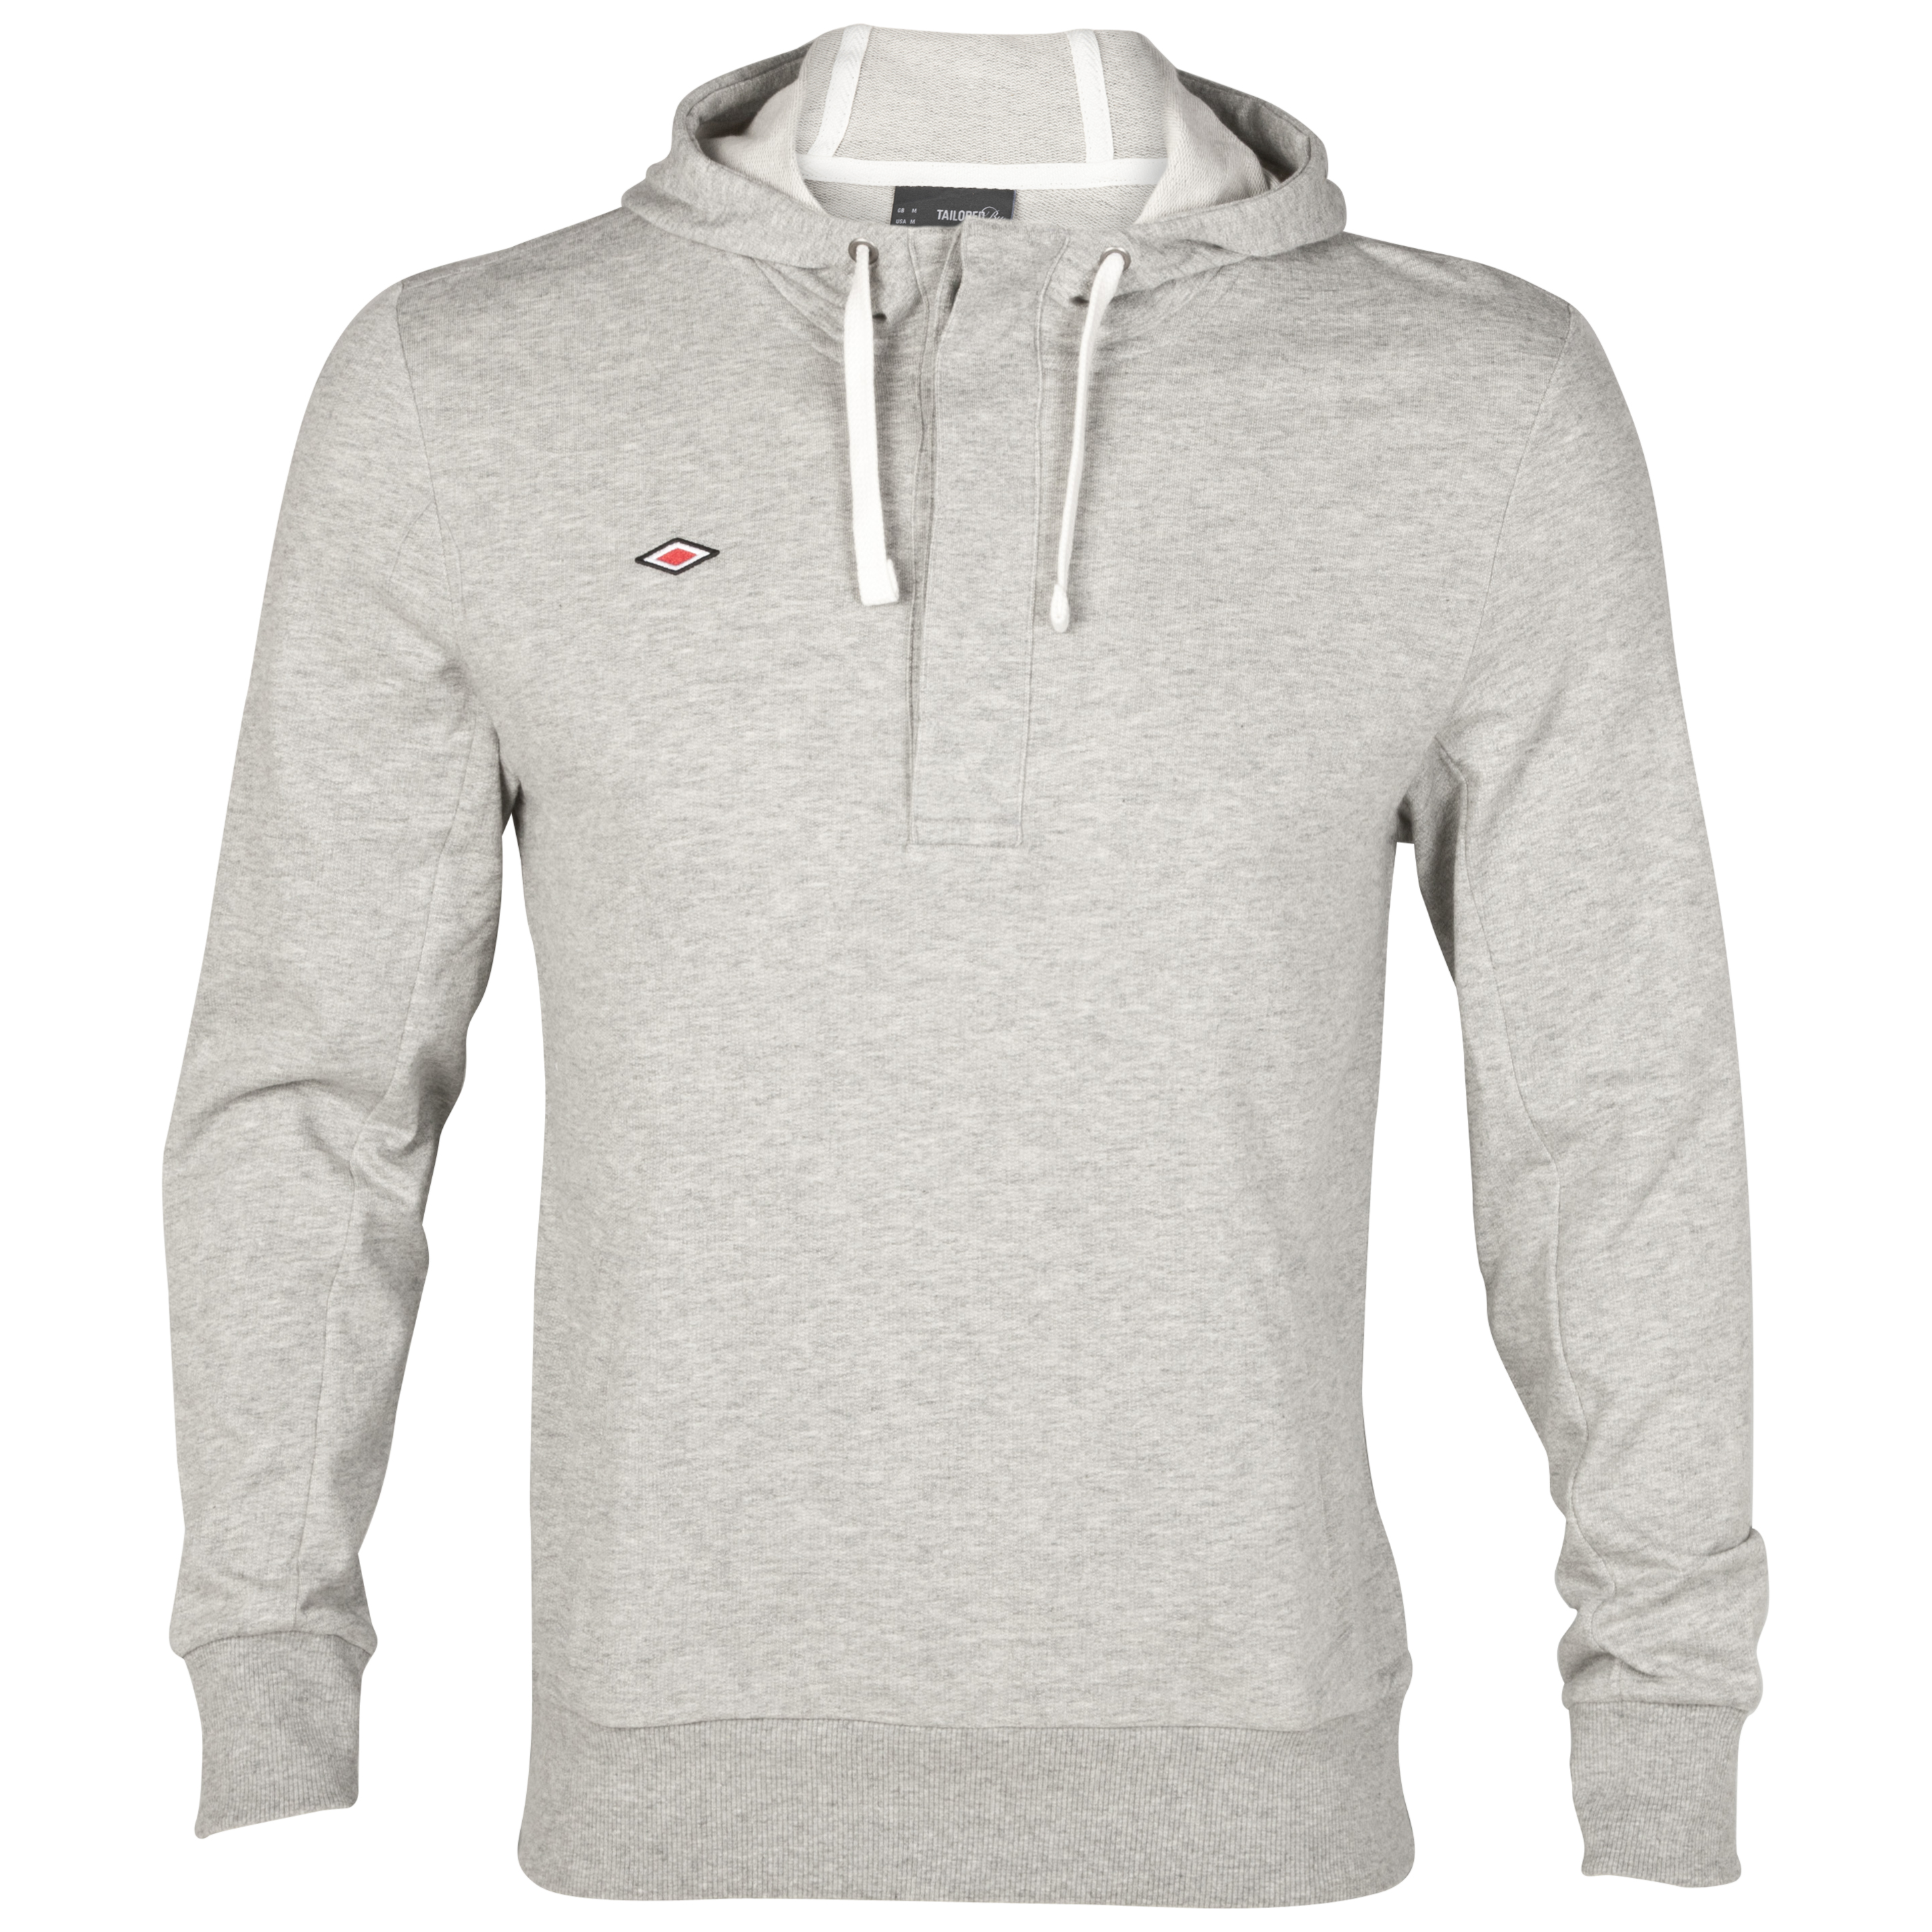 Umbro Overhead Hooded Sweatshirt - Grey Marl